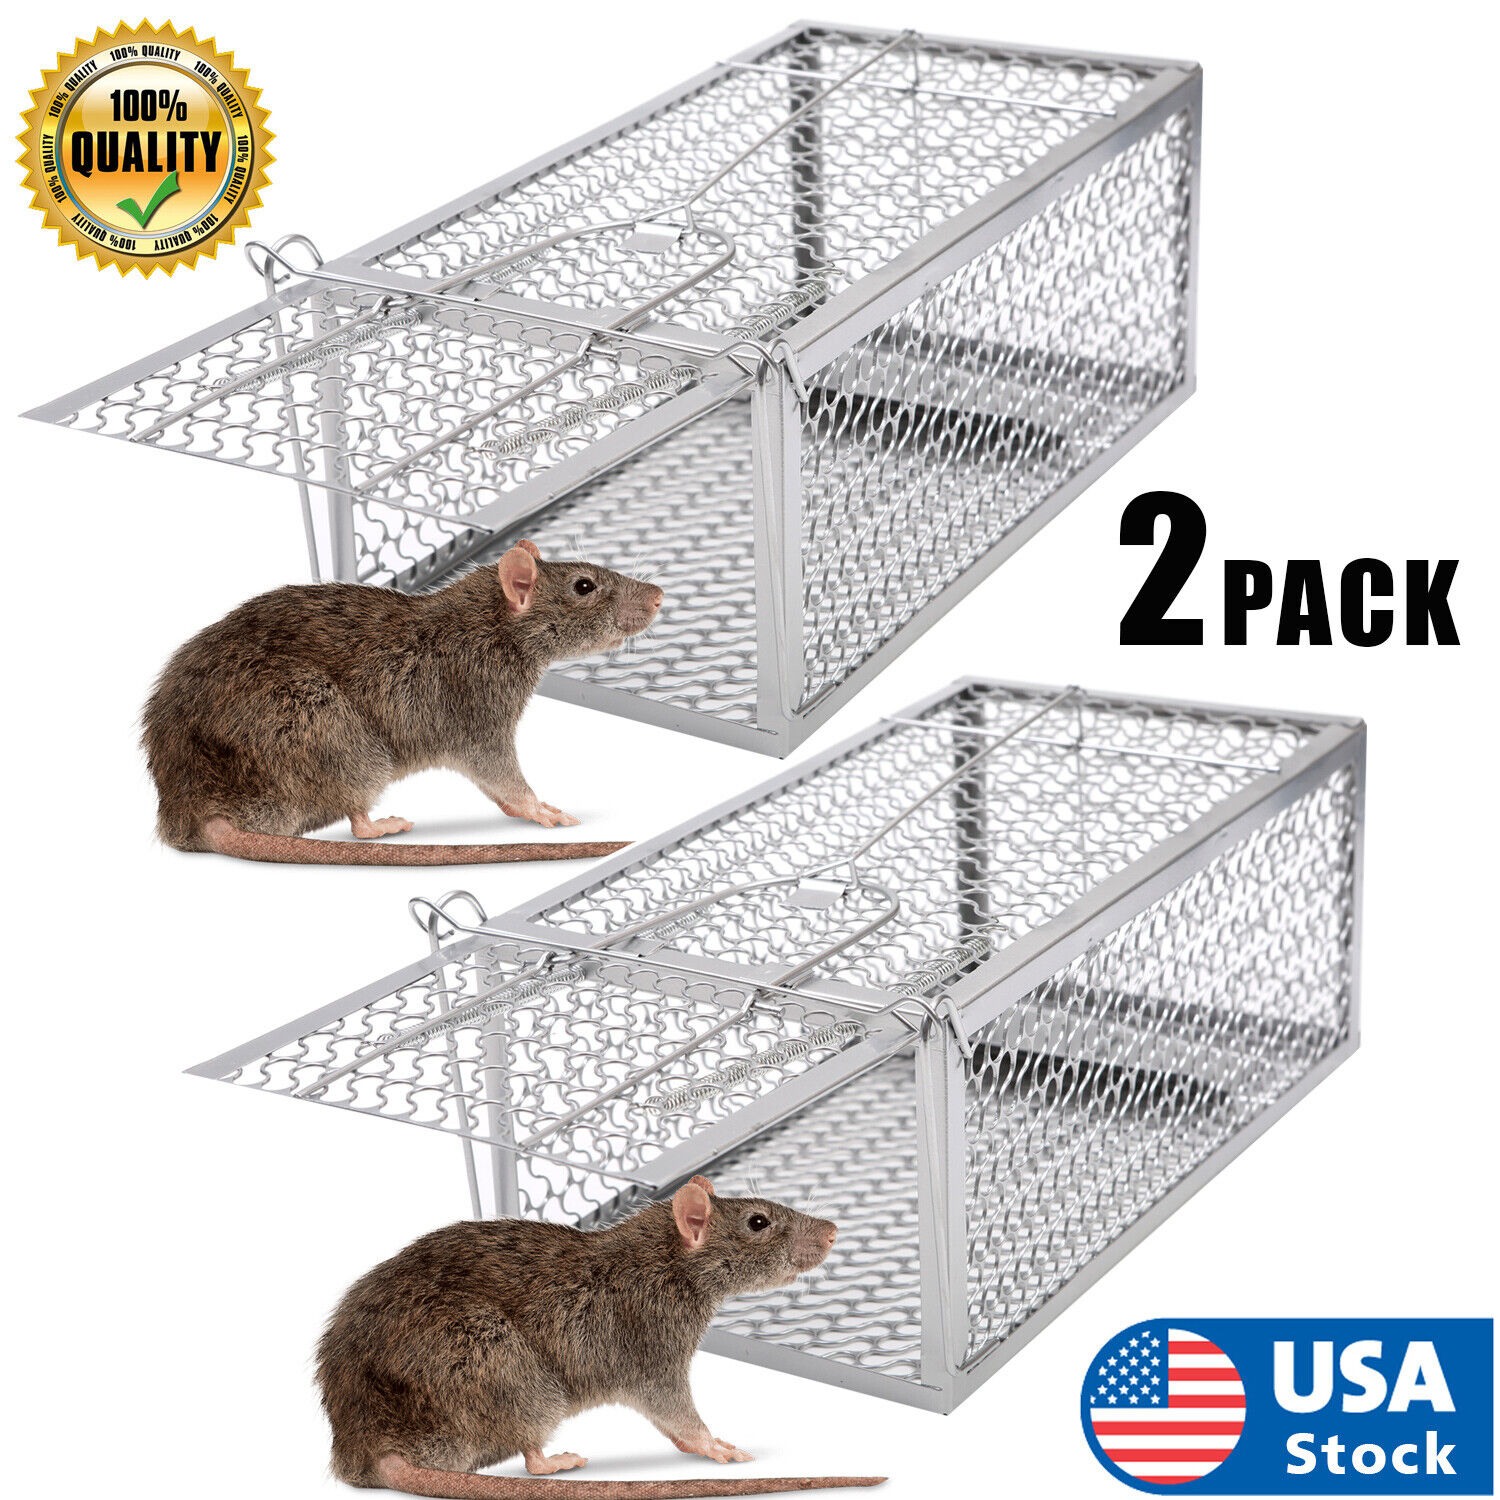 2PACK Live Humane Cage Trap for Squirrel Chipmunk Rat Mice Rodent Animal Catcher Animal & Rodent Control